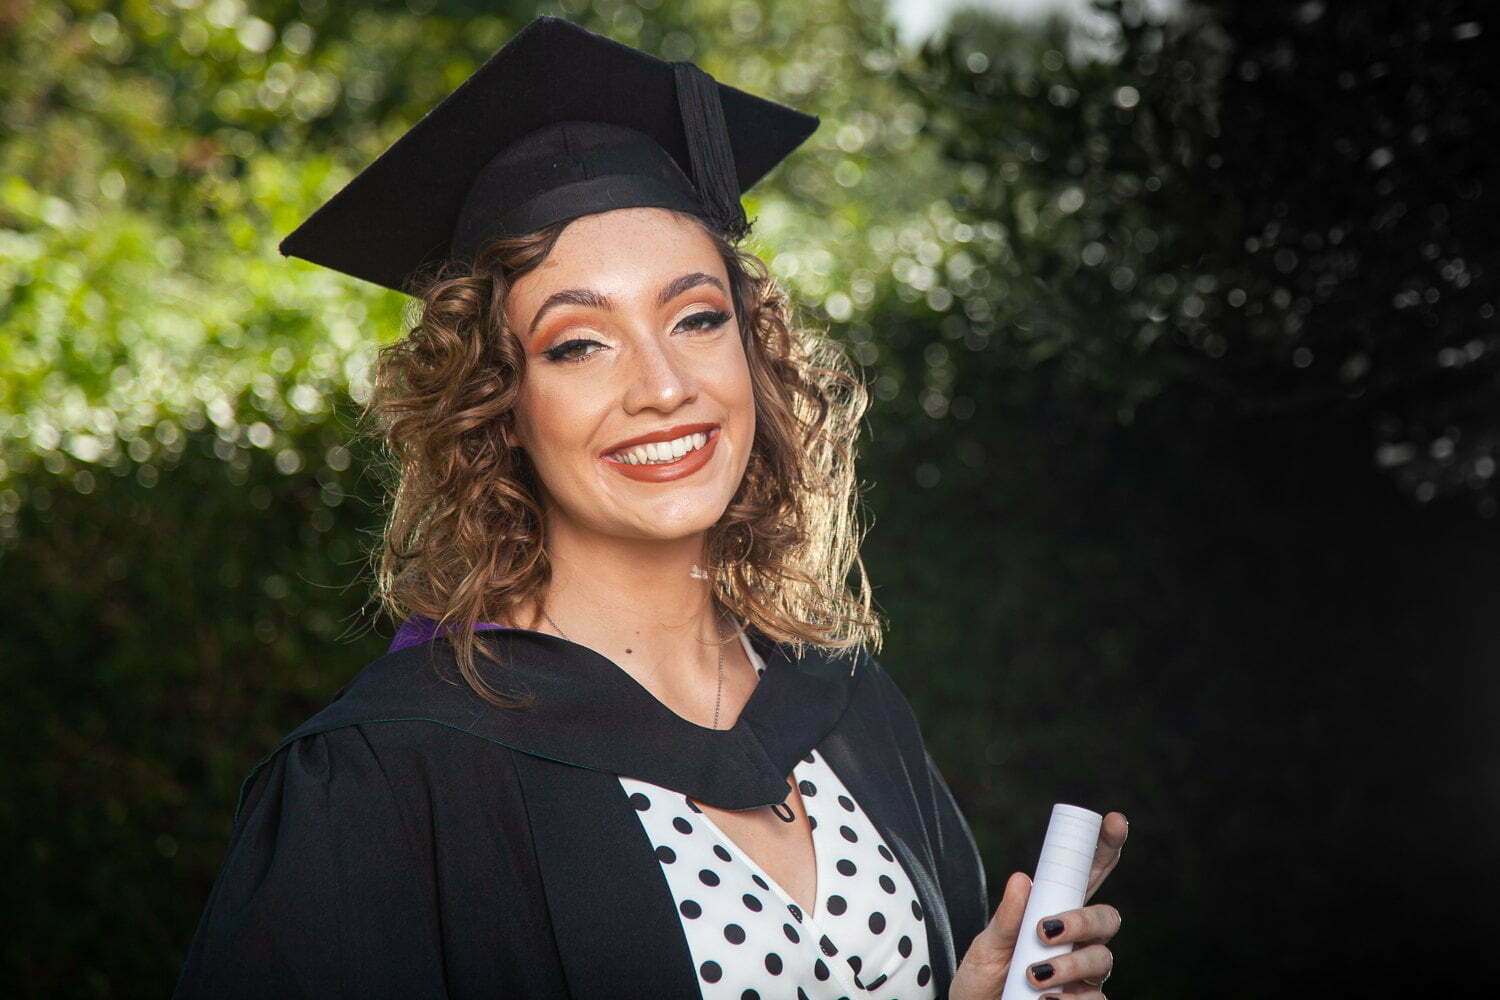 Graduation photography - Photographer in Ormskirk